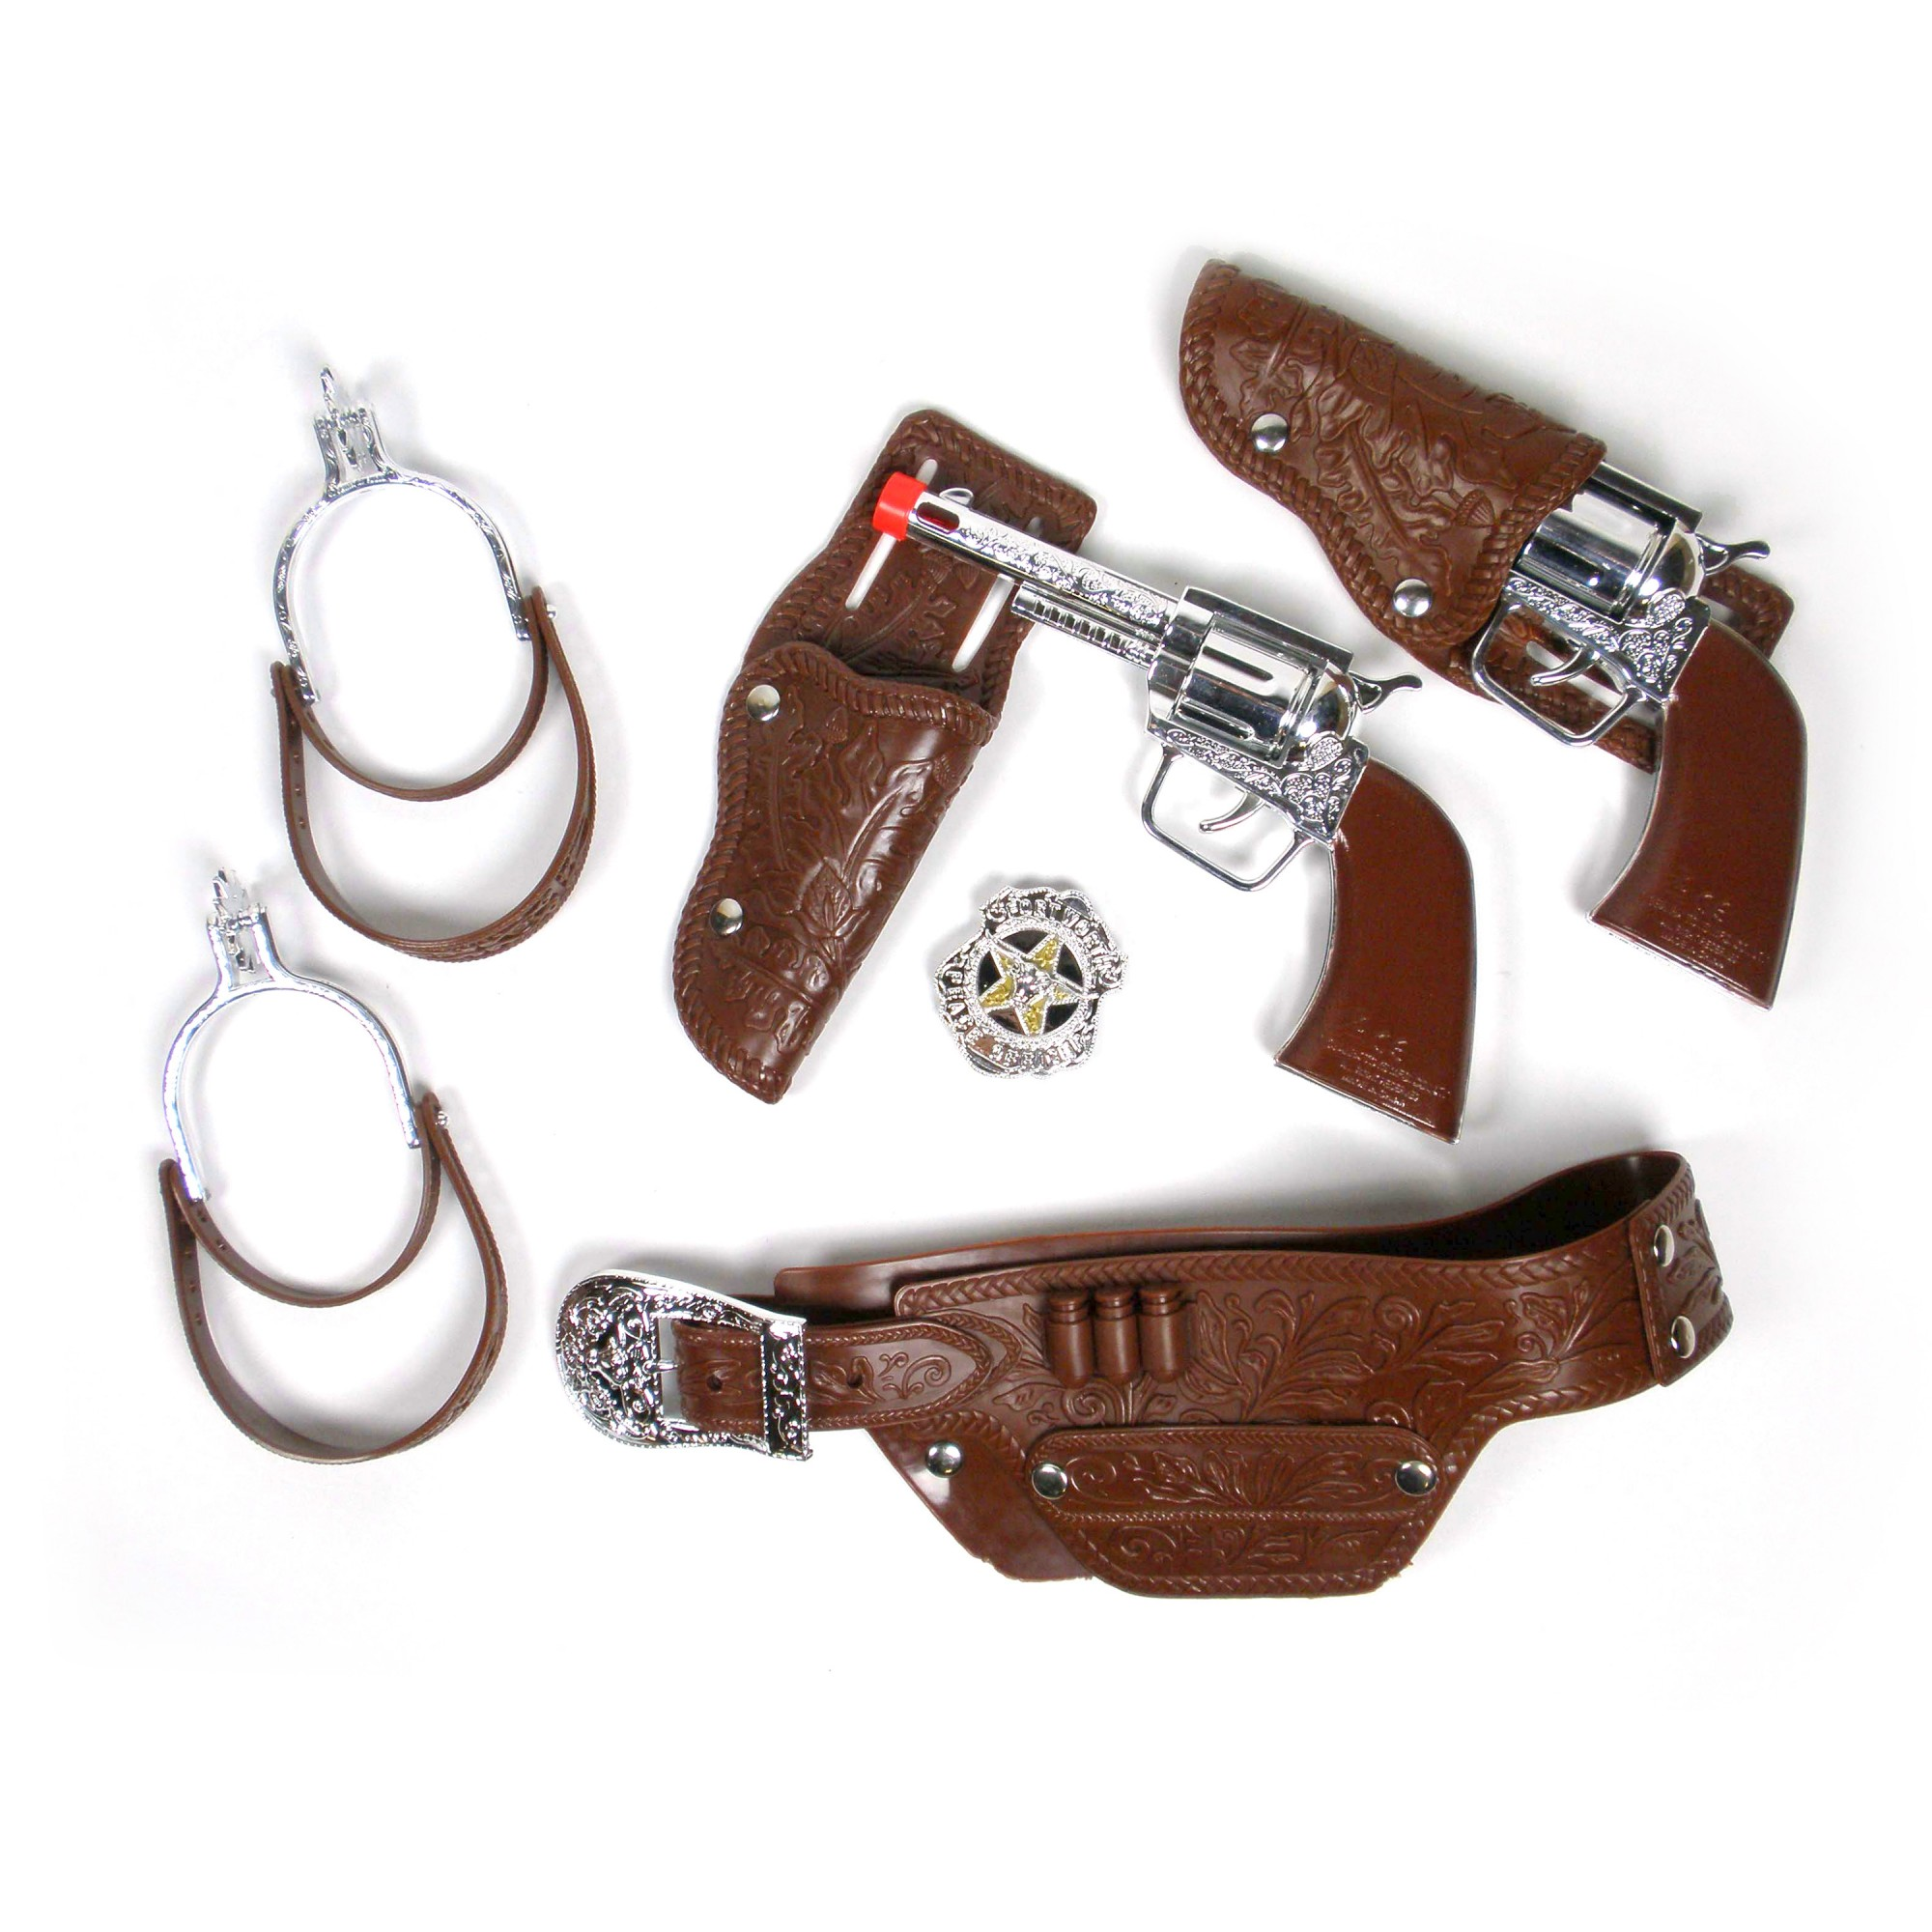 Cow Boy Deluxe Playset W/Revolvers, Belt